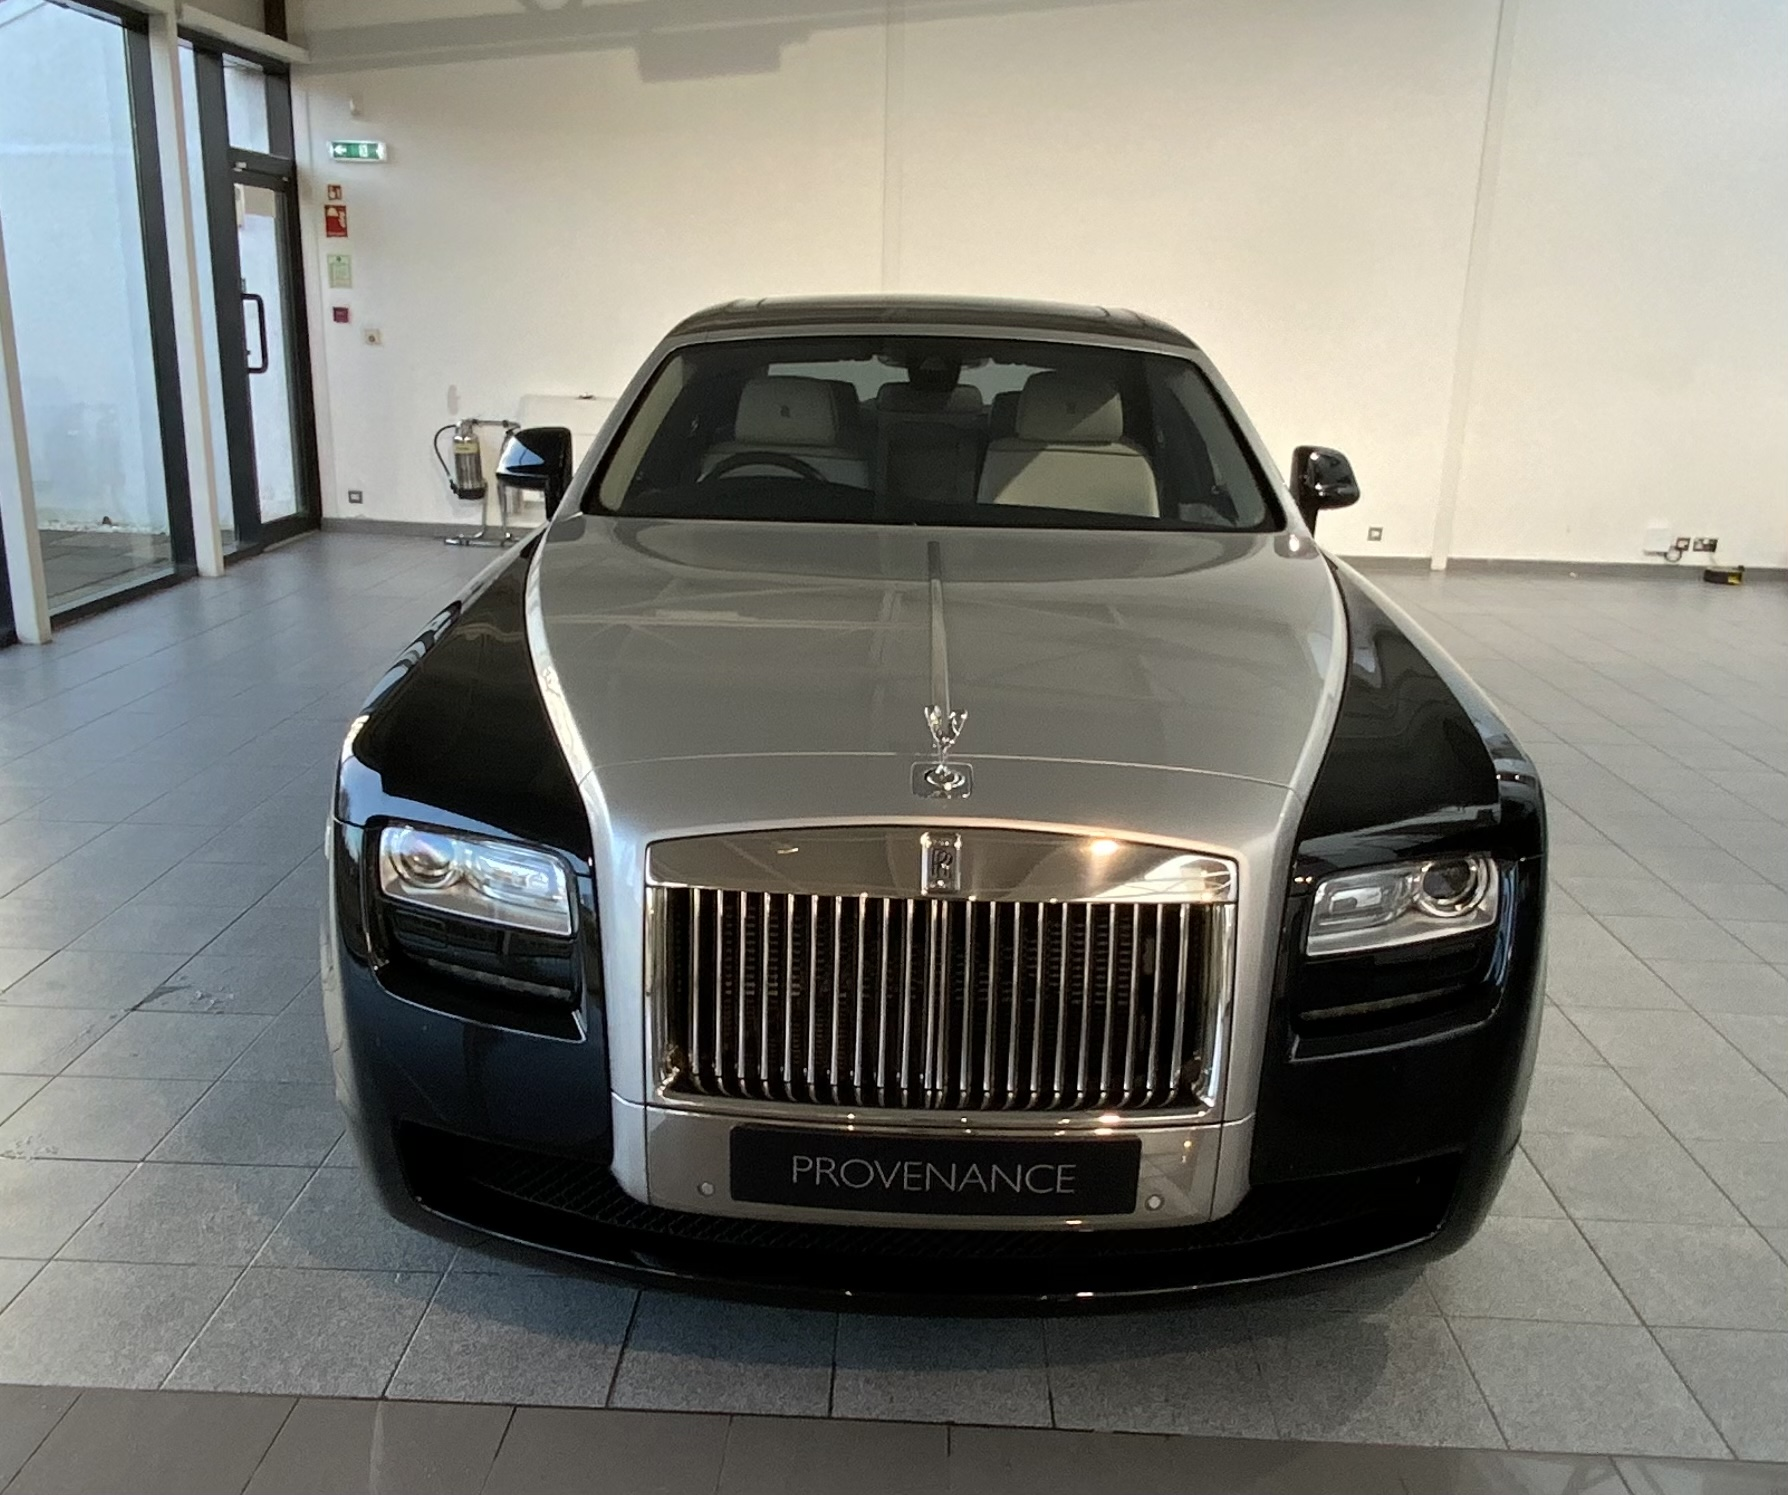 Rolls-Royce Ghost V-SPEC 4dr Auto image 26